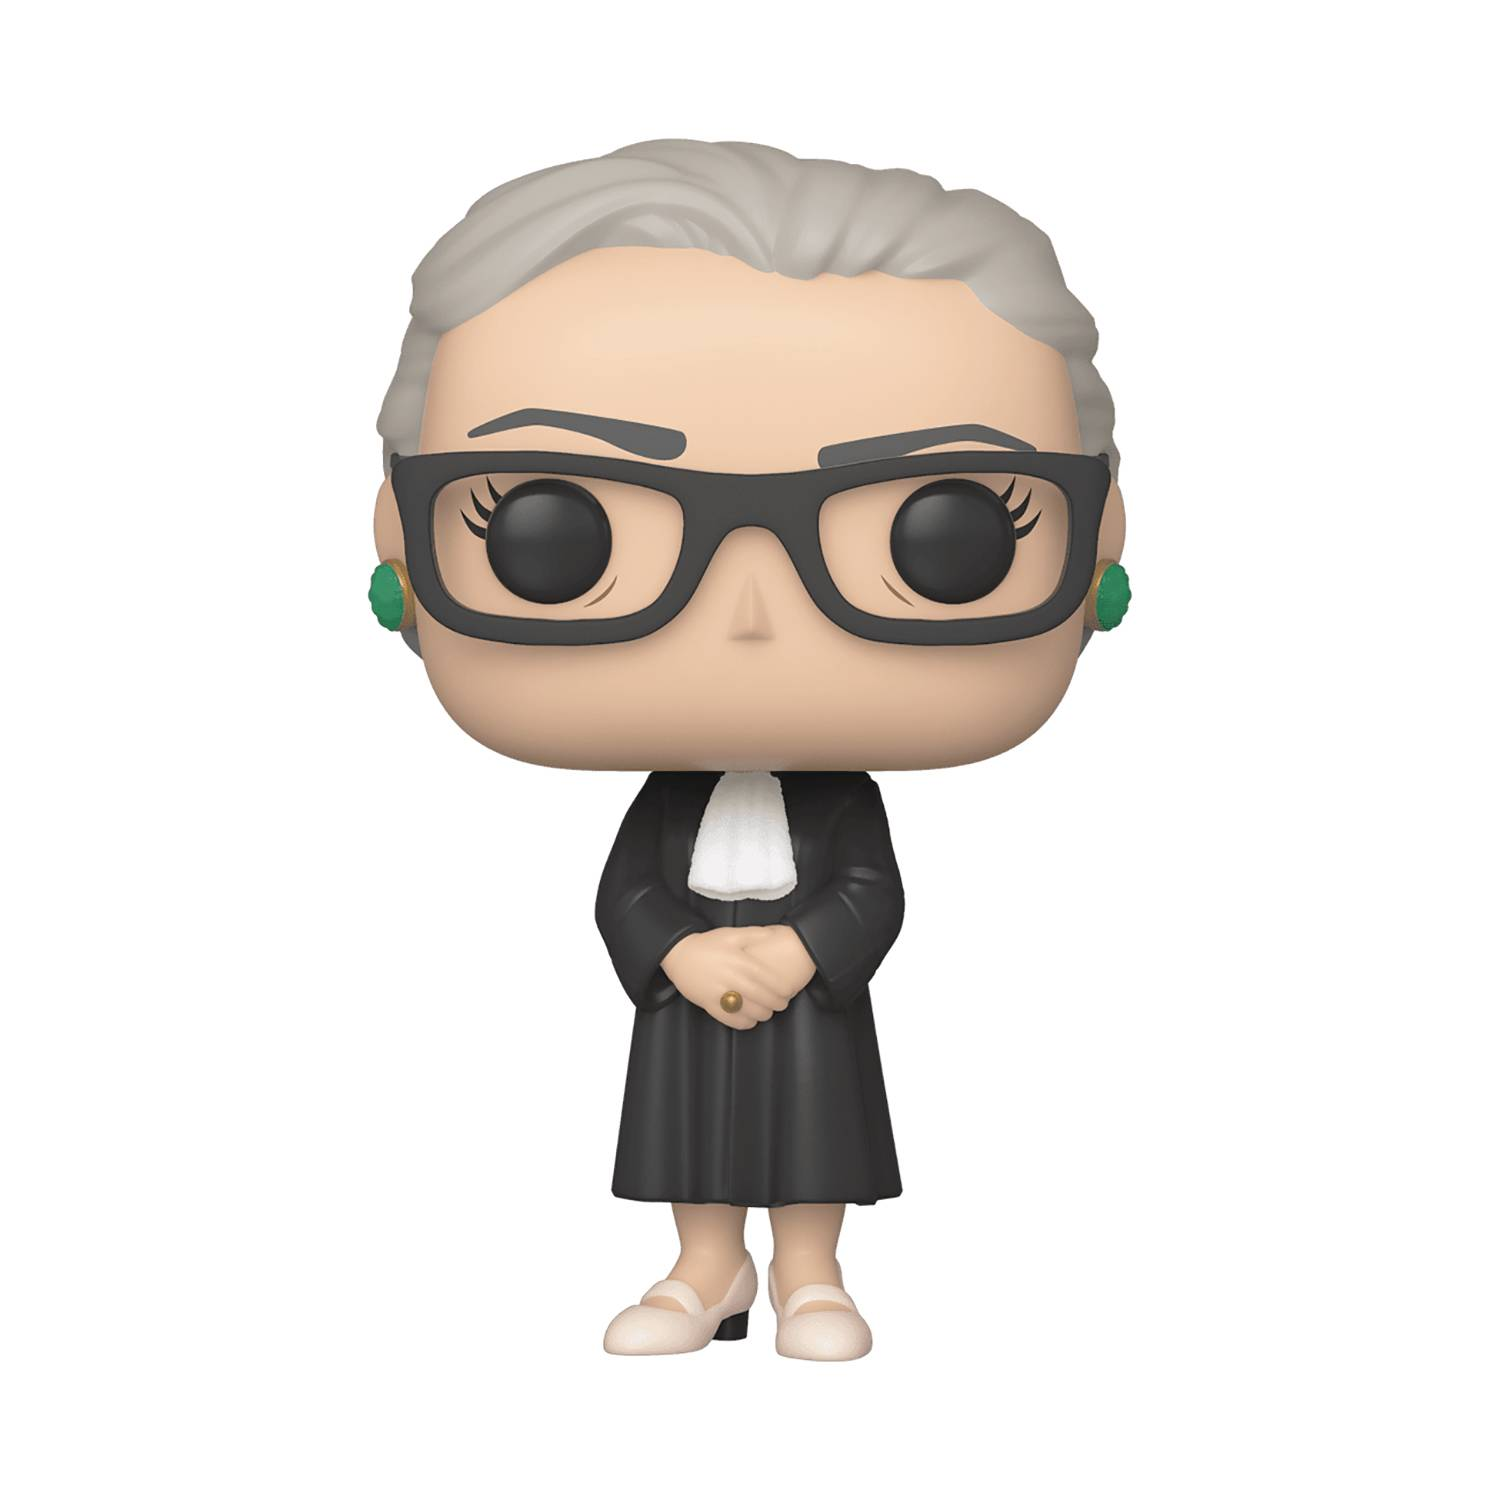 POP ICONS RUTH BADER GINSBURG VIN FIG